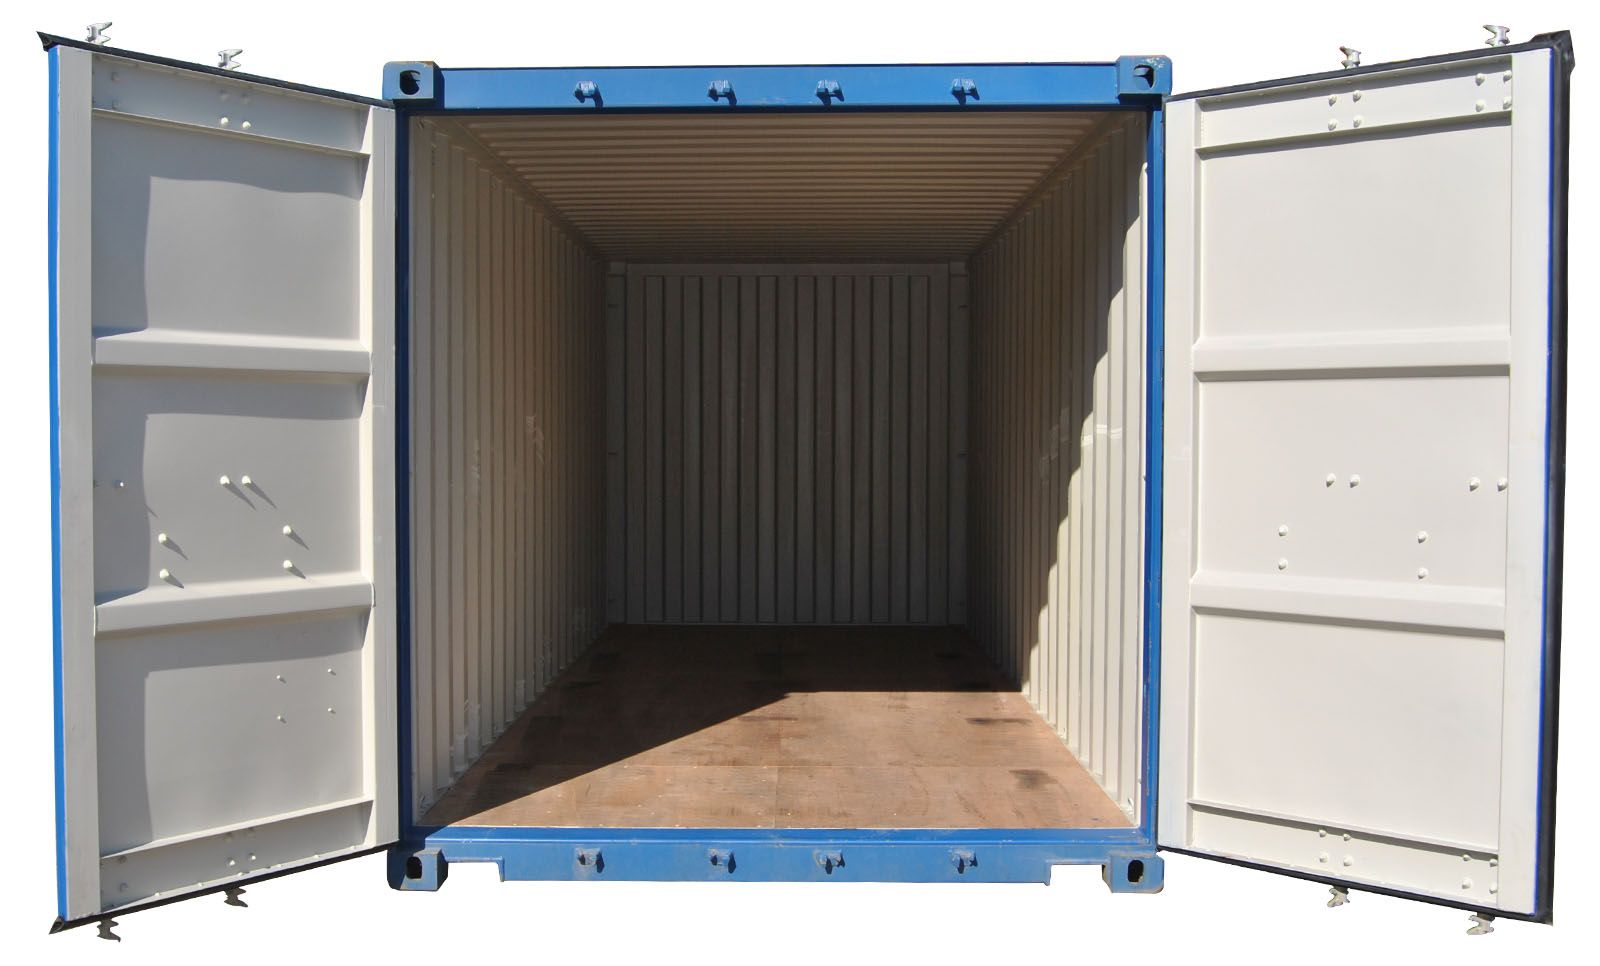 ... Inside Shipping Container Homes Awesome Shipping Containers For Housing  Inside Of New Container ...